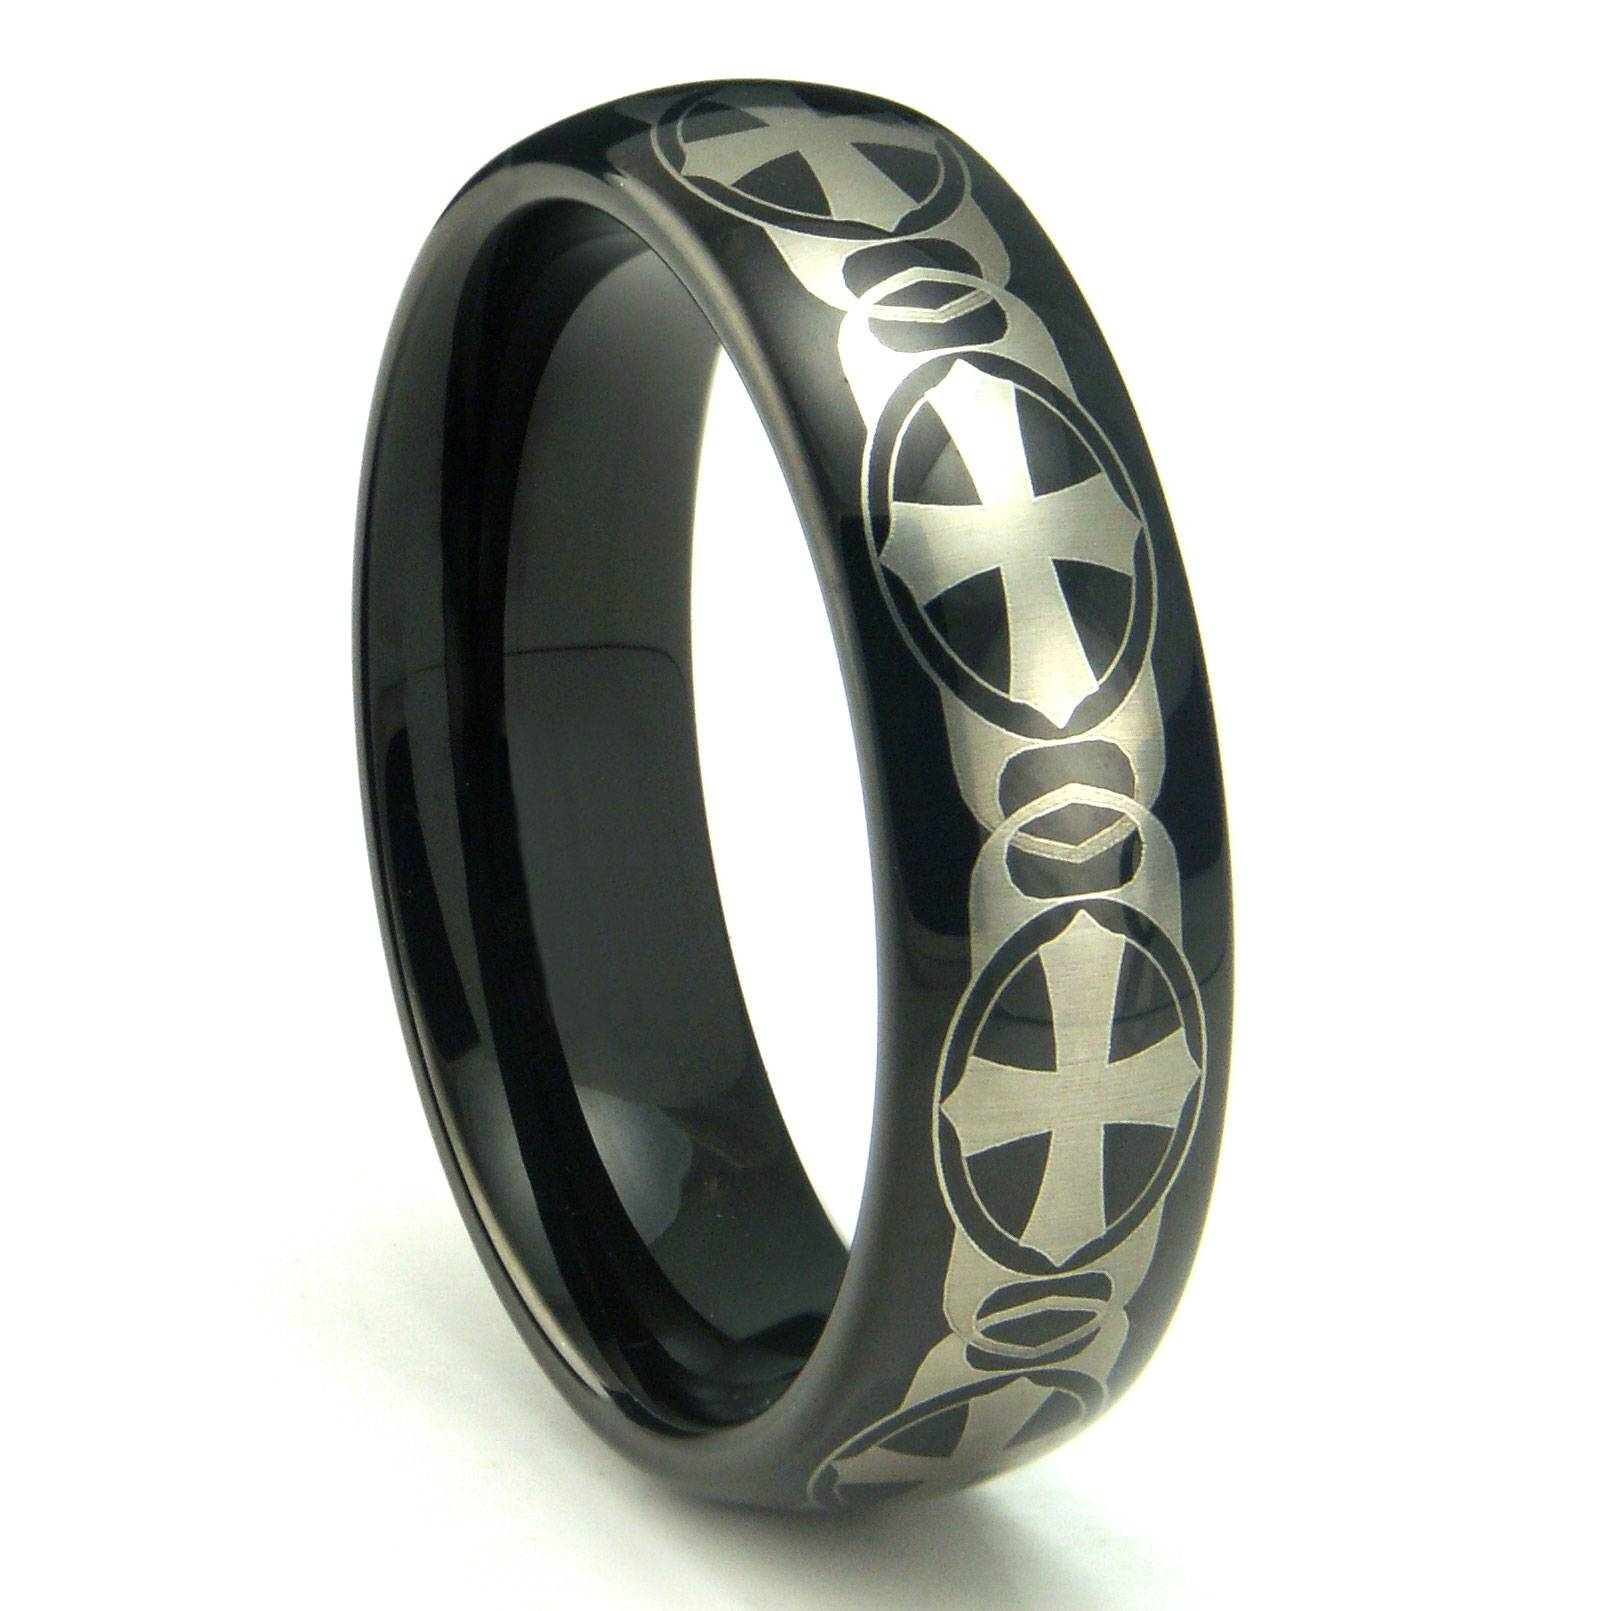 Black Tungsten Carbide Laser Engraved Celtic Cross Dome Wedding With Regard To Men's Wedding Bands With Cross (View 5 of 15)